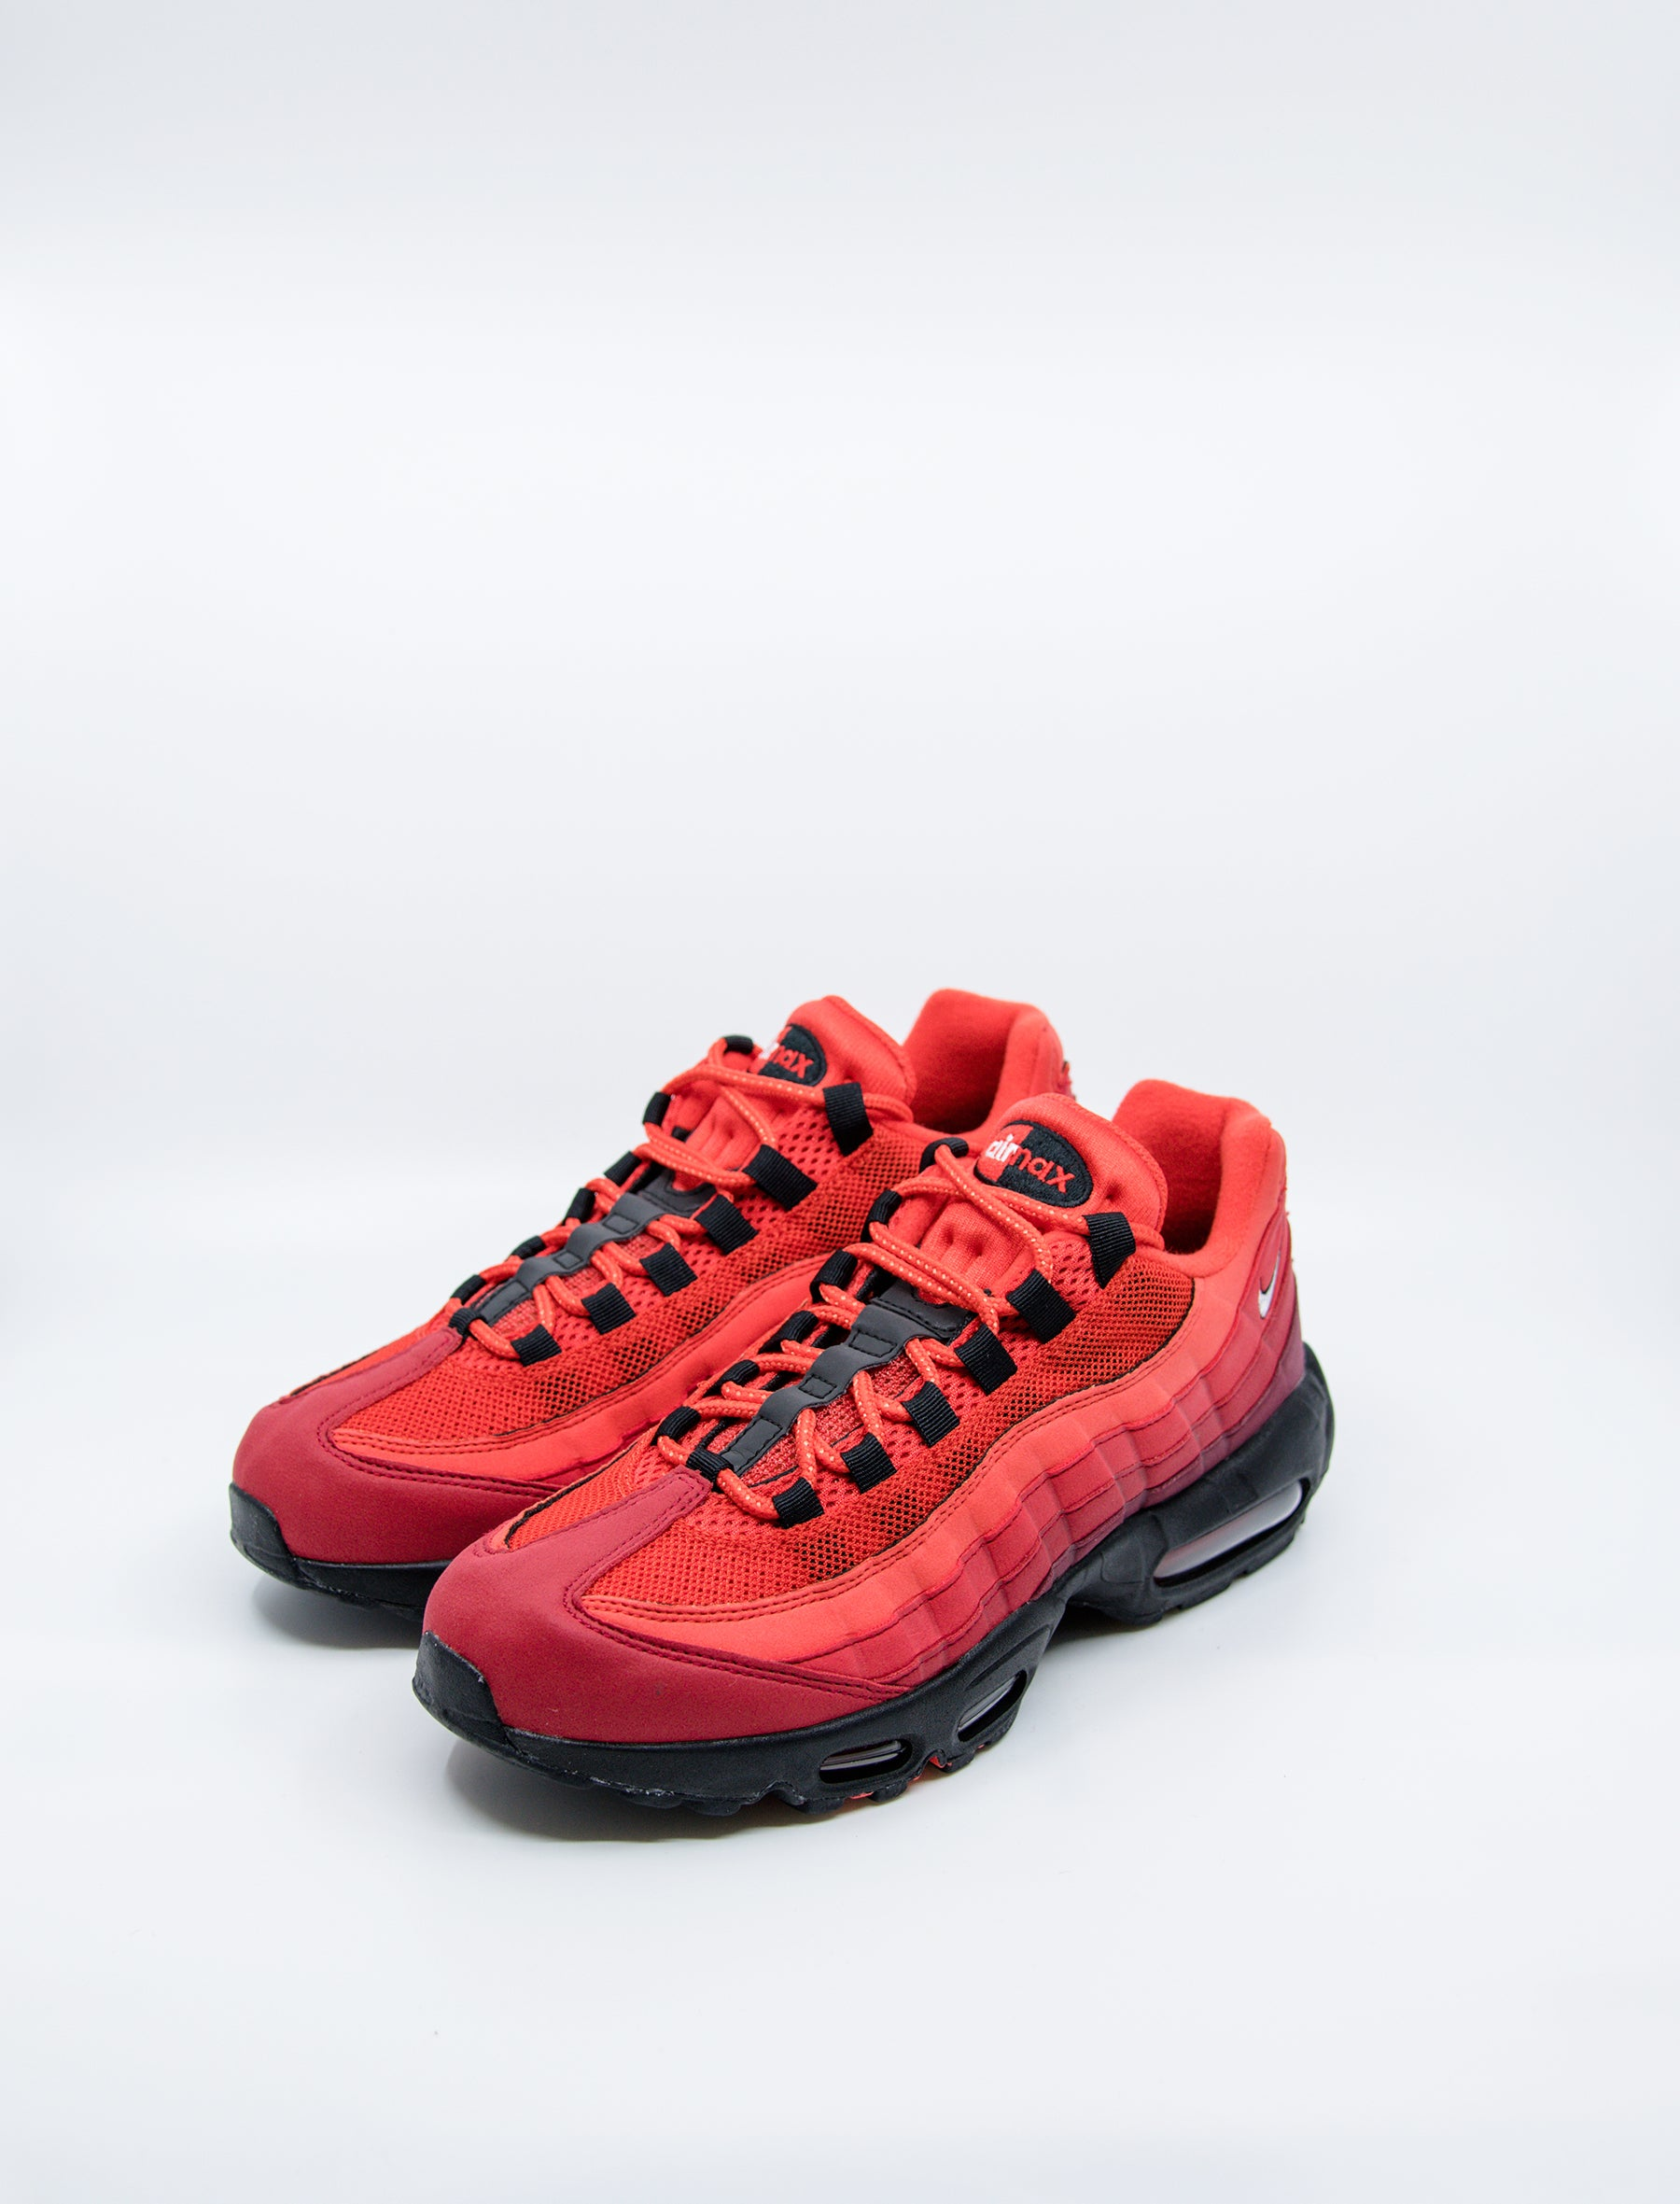 on sale a1f16 199c8 Air Max 95 OG Habanero Red AT2865-600